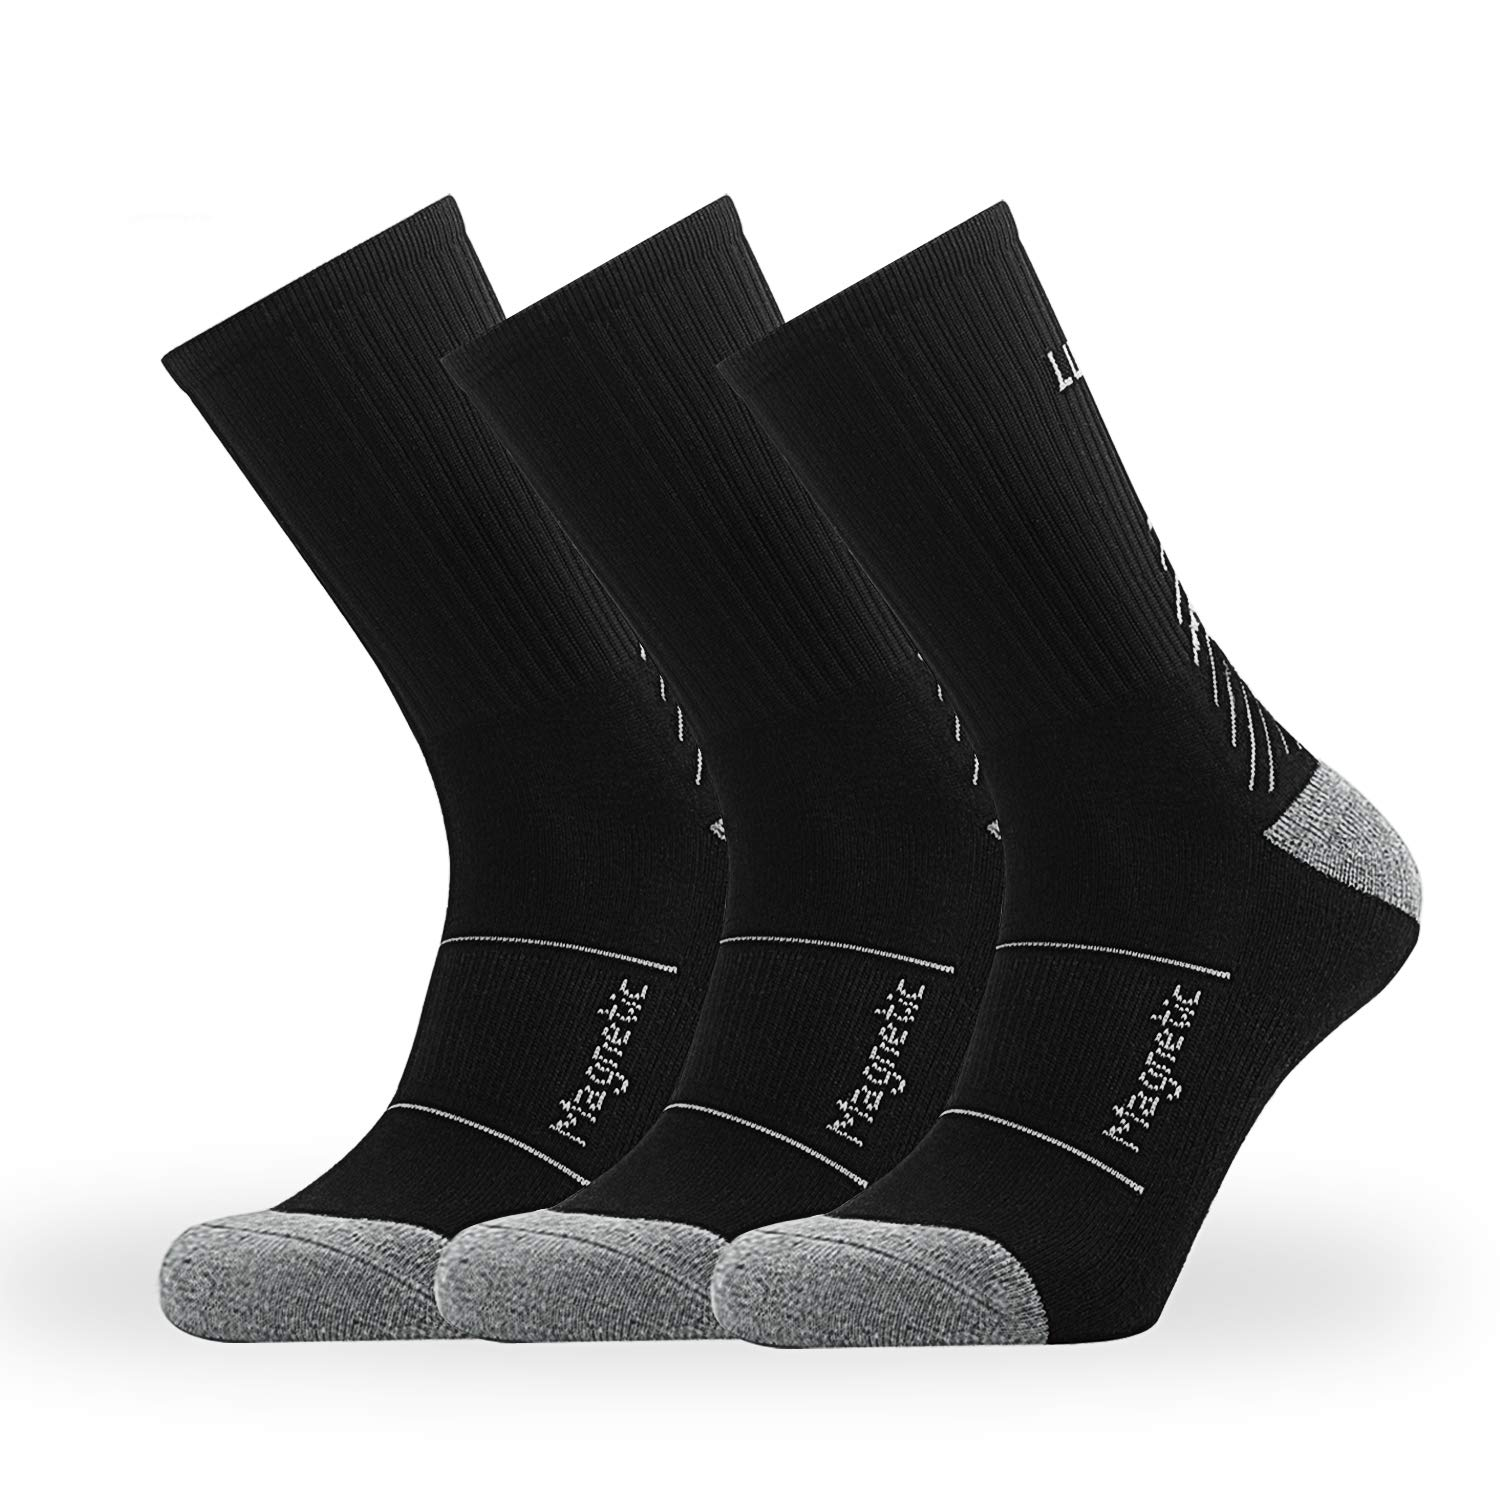 Calcetines termicos decathlon